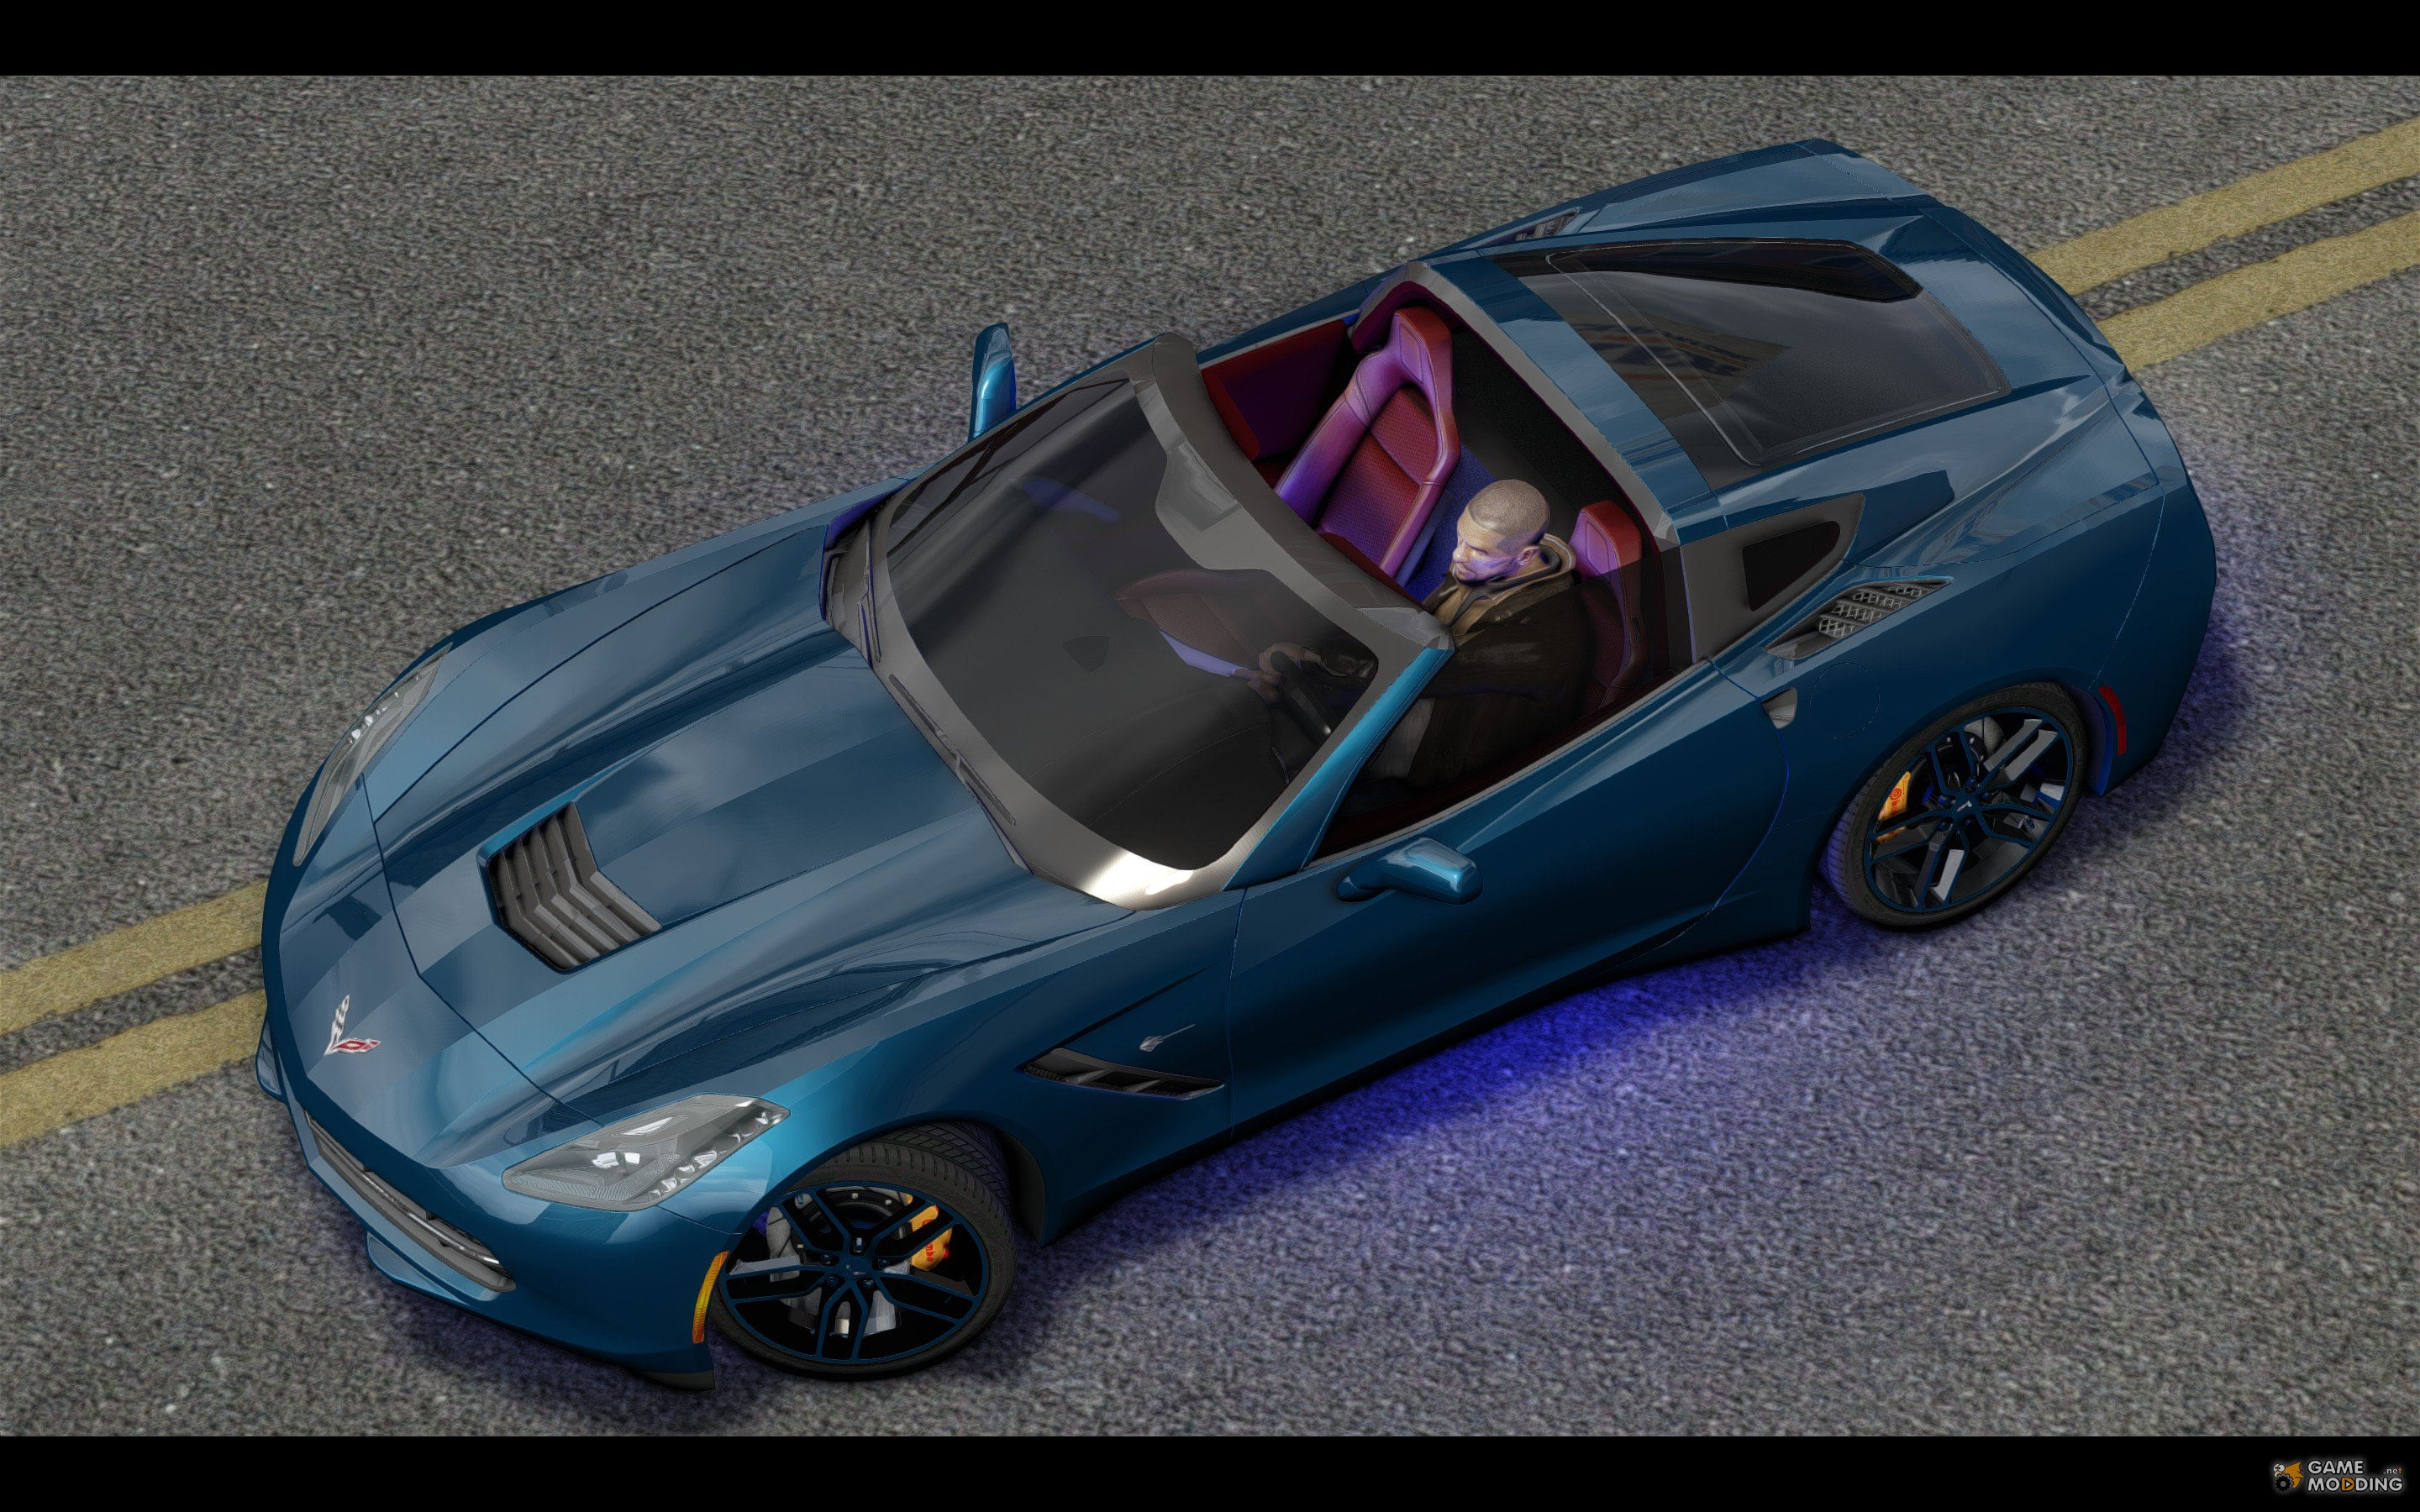 bugatti veyron tires size html with 49490 2014 Chevrolet Corvette C7 Tuning on 41789 Bmw X5 48is Baku in addition Ford Ecosport Gets Raptor Like Edition additionally F211 Black 4132848 besides Honda Pioneer 1000 Wheels Tires Side By Side Atv Utv Sxs further Toyota Camry 2008 Price In Japan 969.